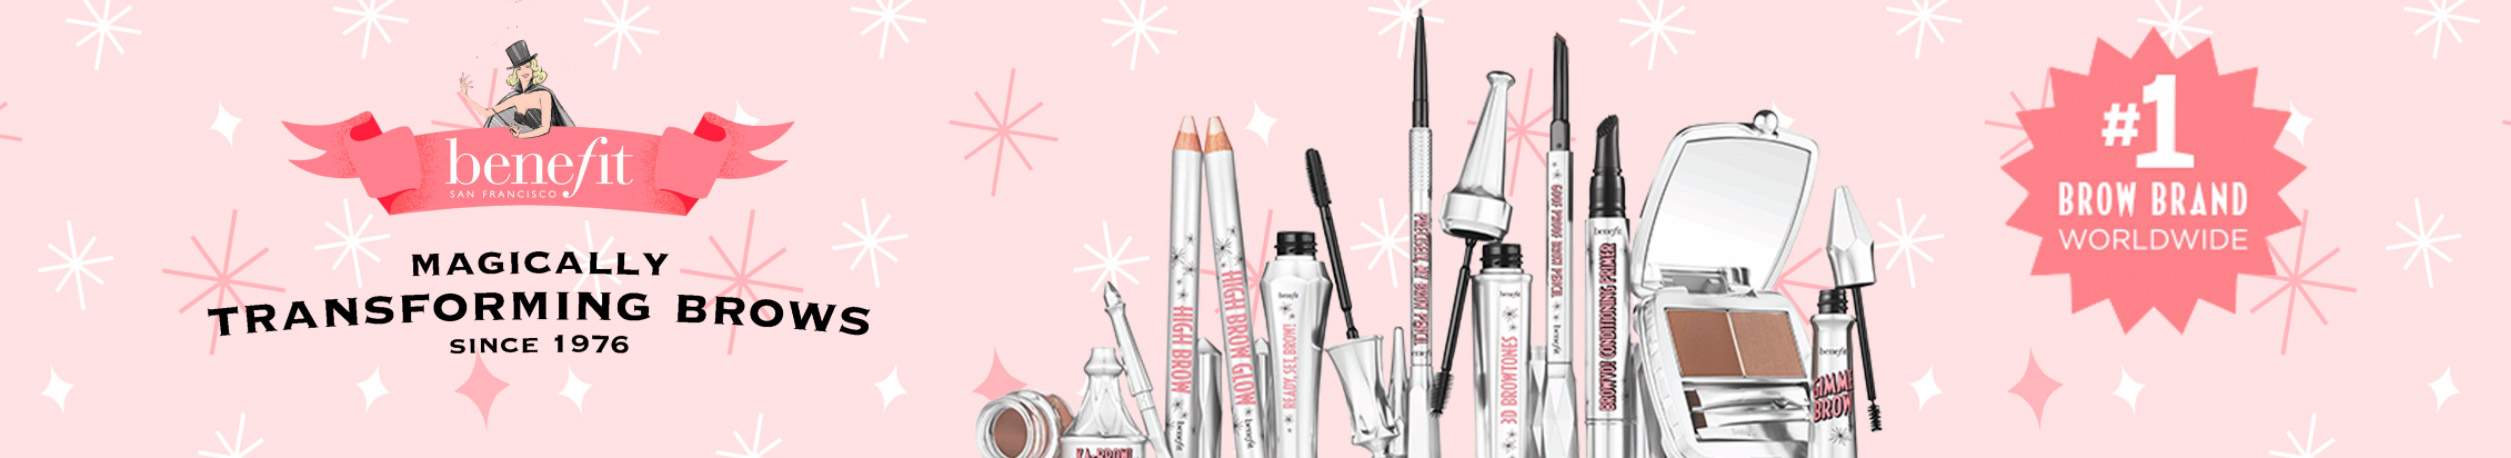 Benefit desktop banner